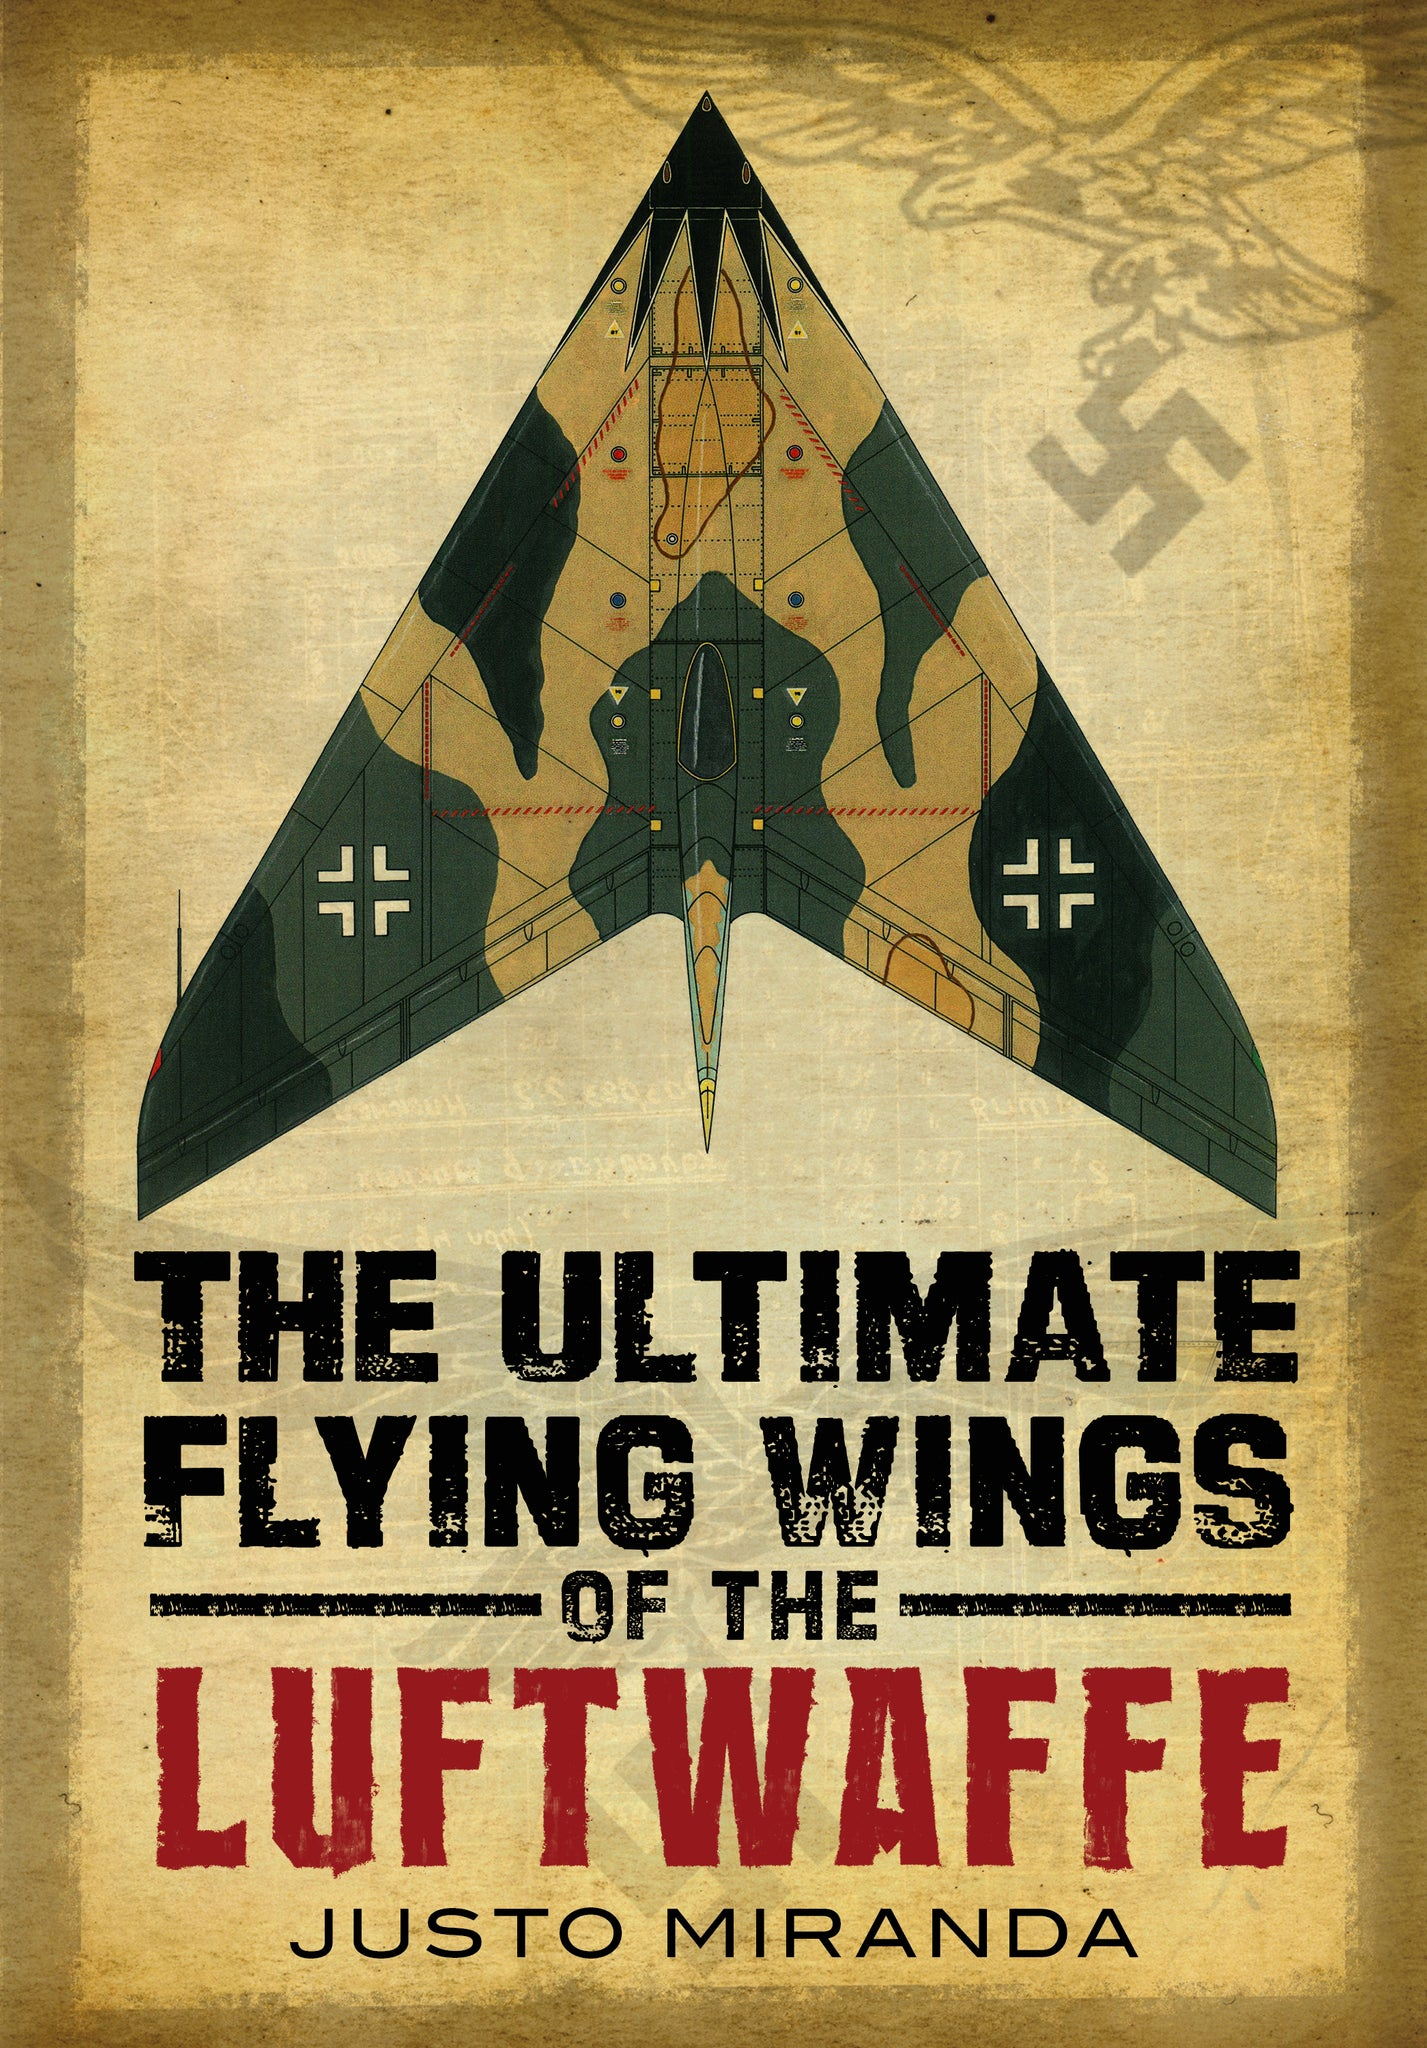 The Ultimate Flying Wings of the Luftwaffe